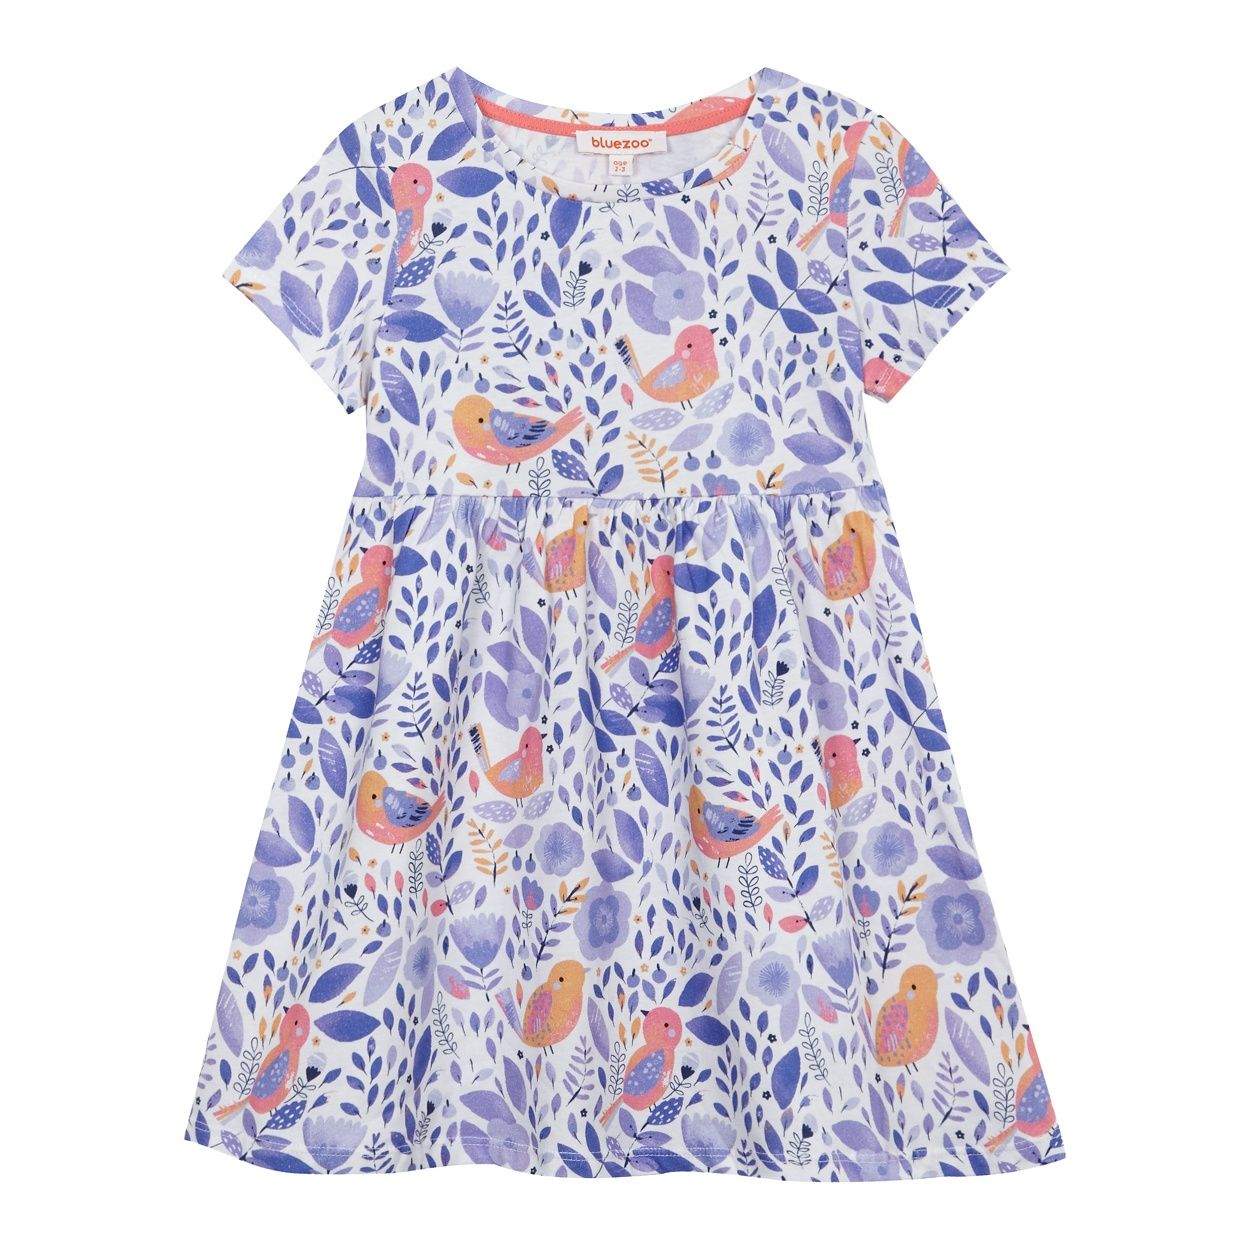 088a6c067dc4 This dress from Bluezoo s fantastic childrenswear range will make a ...